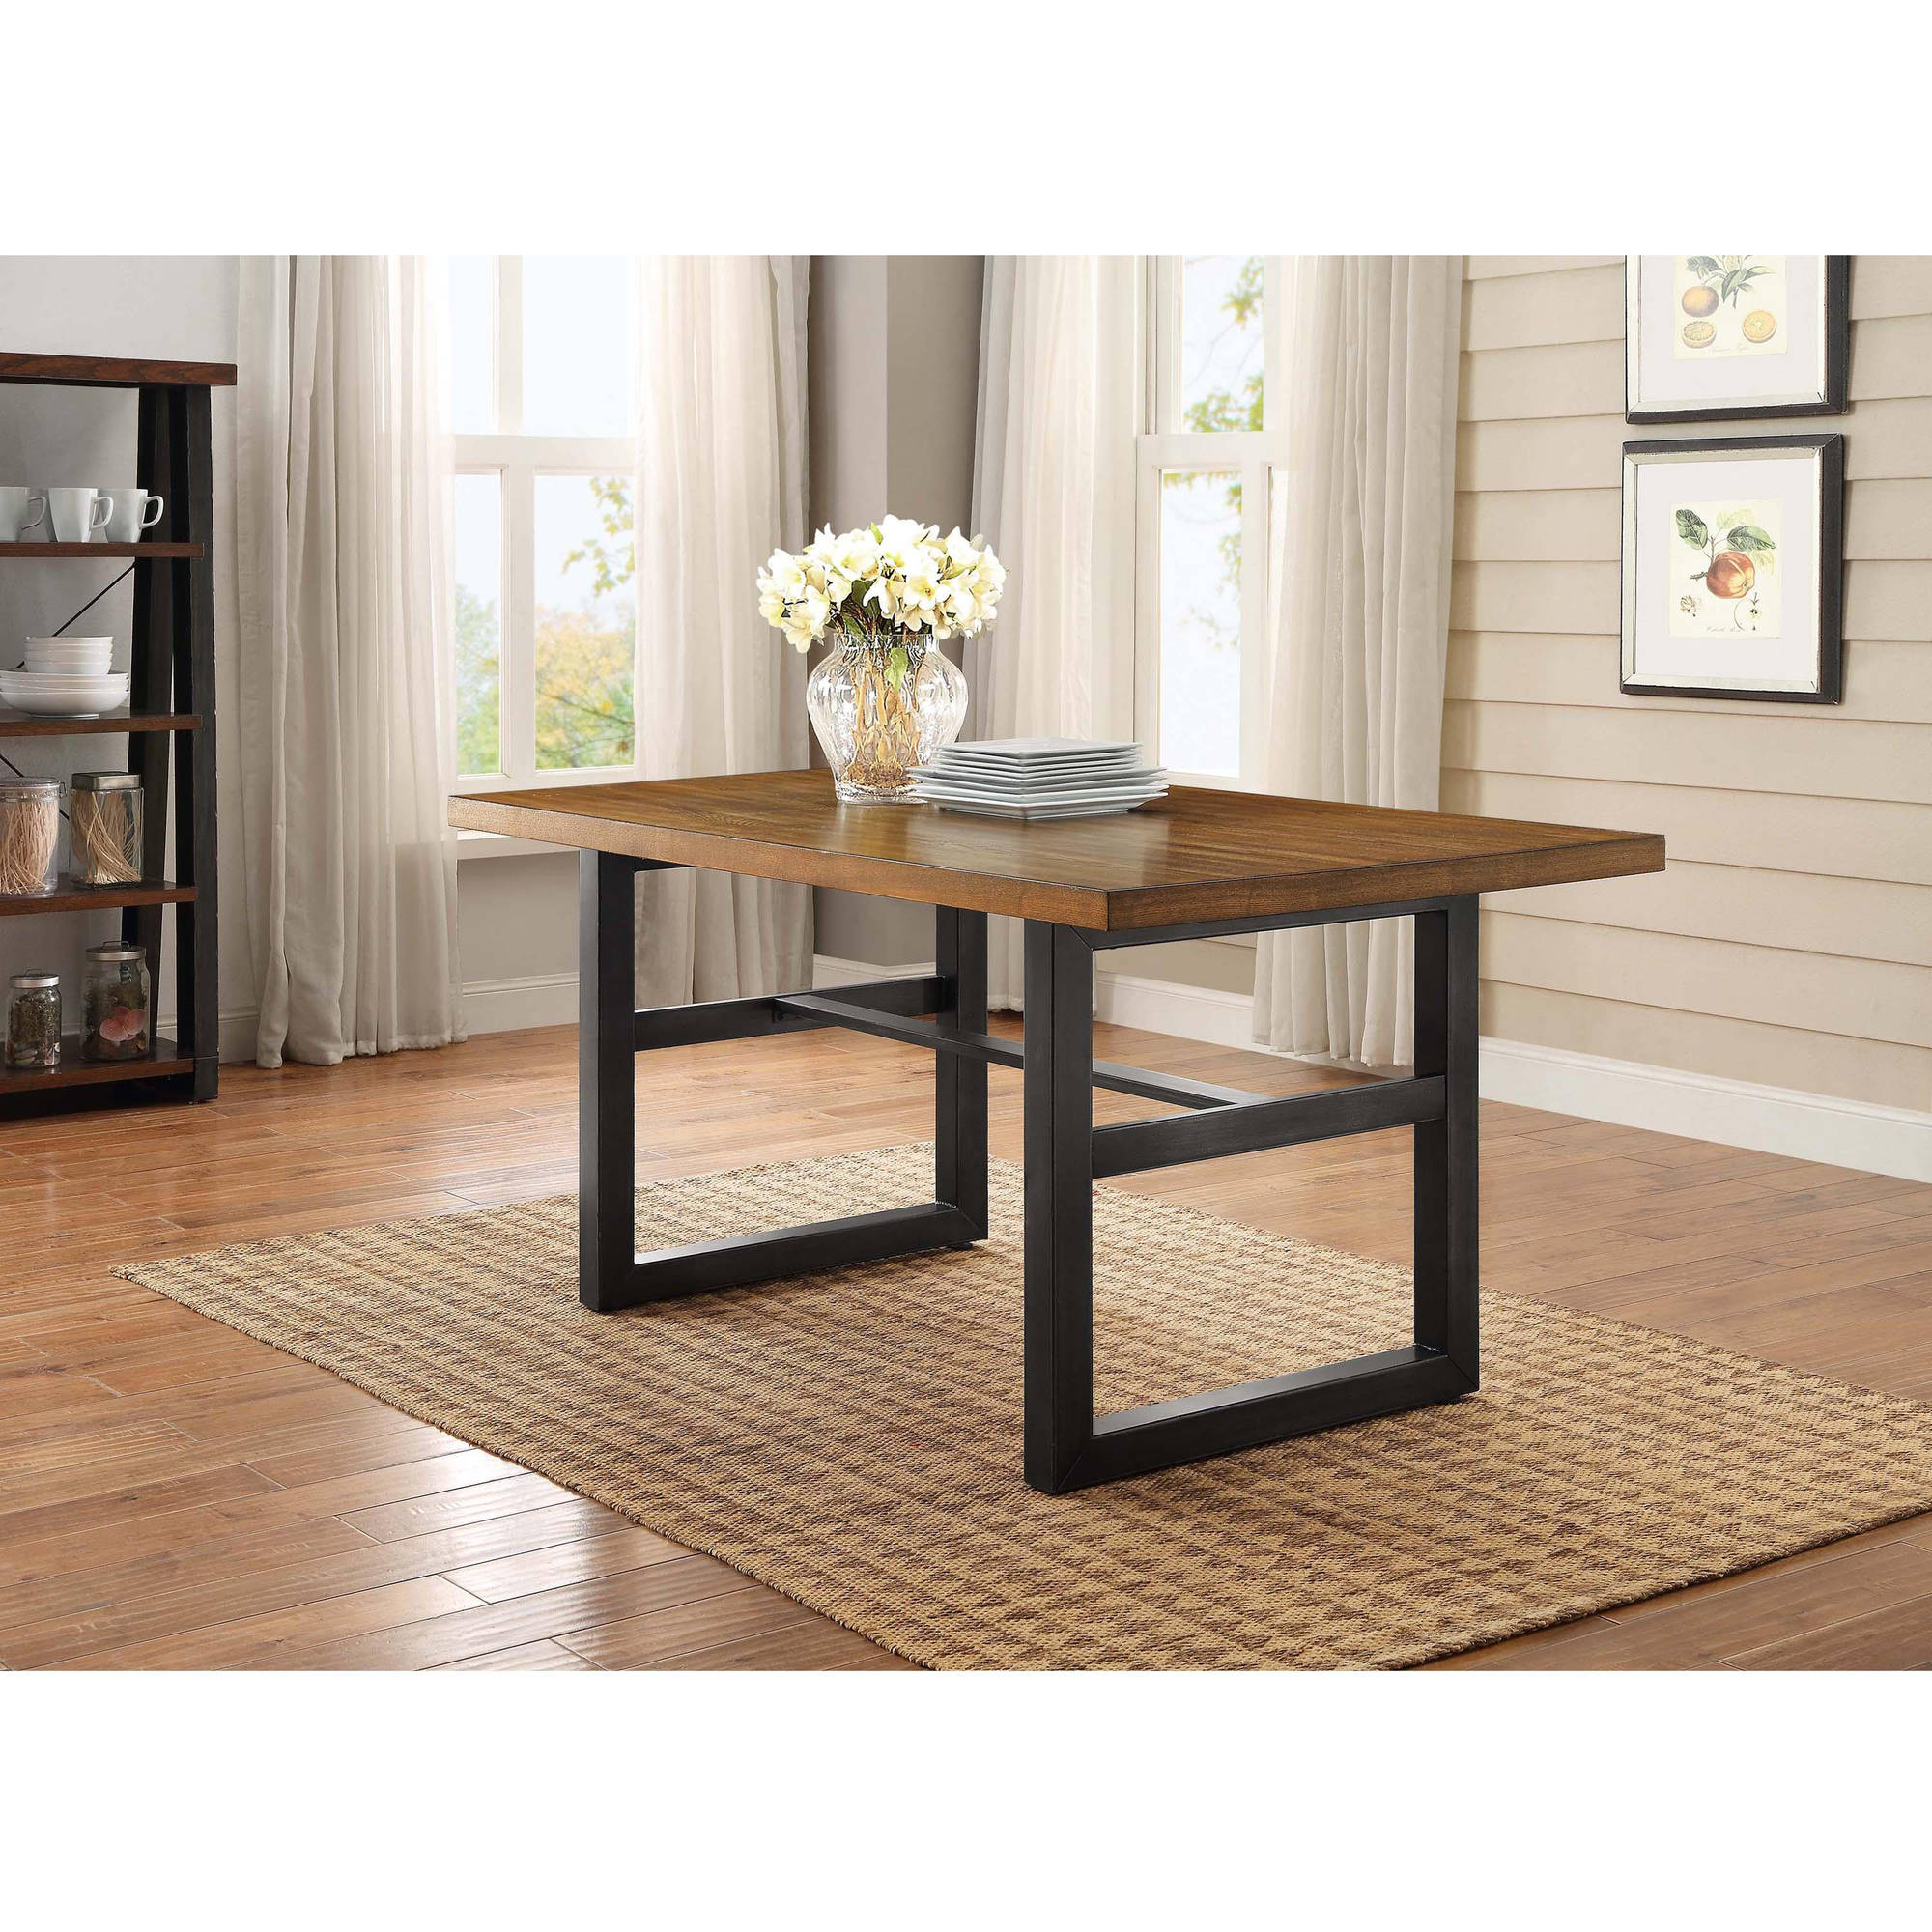 Better Homes and Gardens Mercer Dining Table